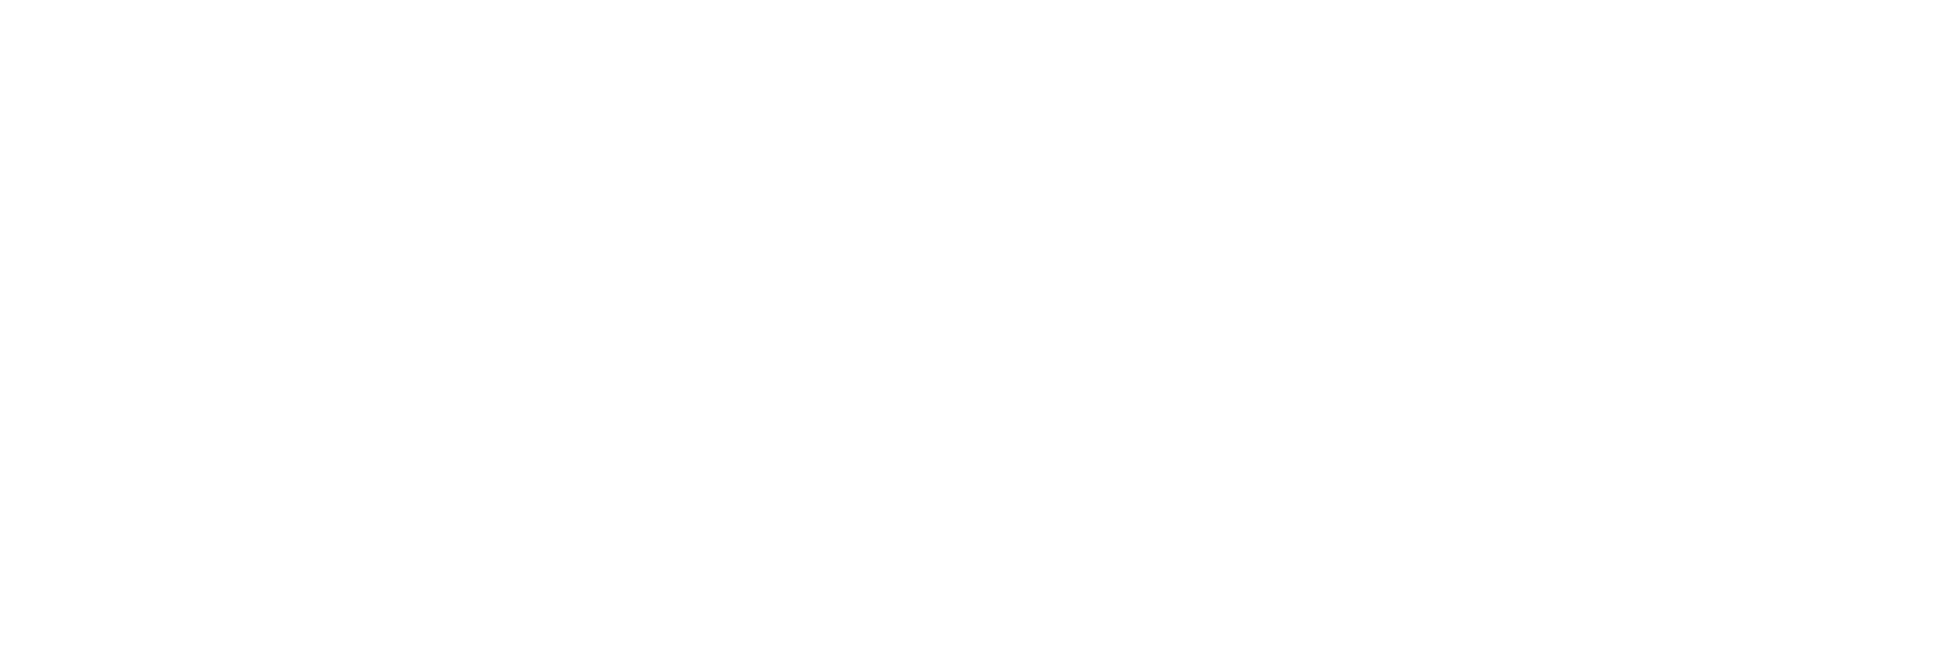 Solutions for Dentists and Orthodontists